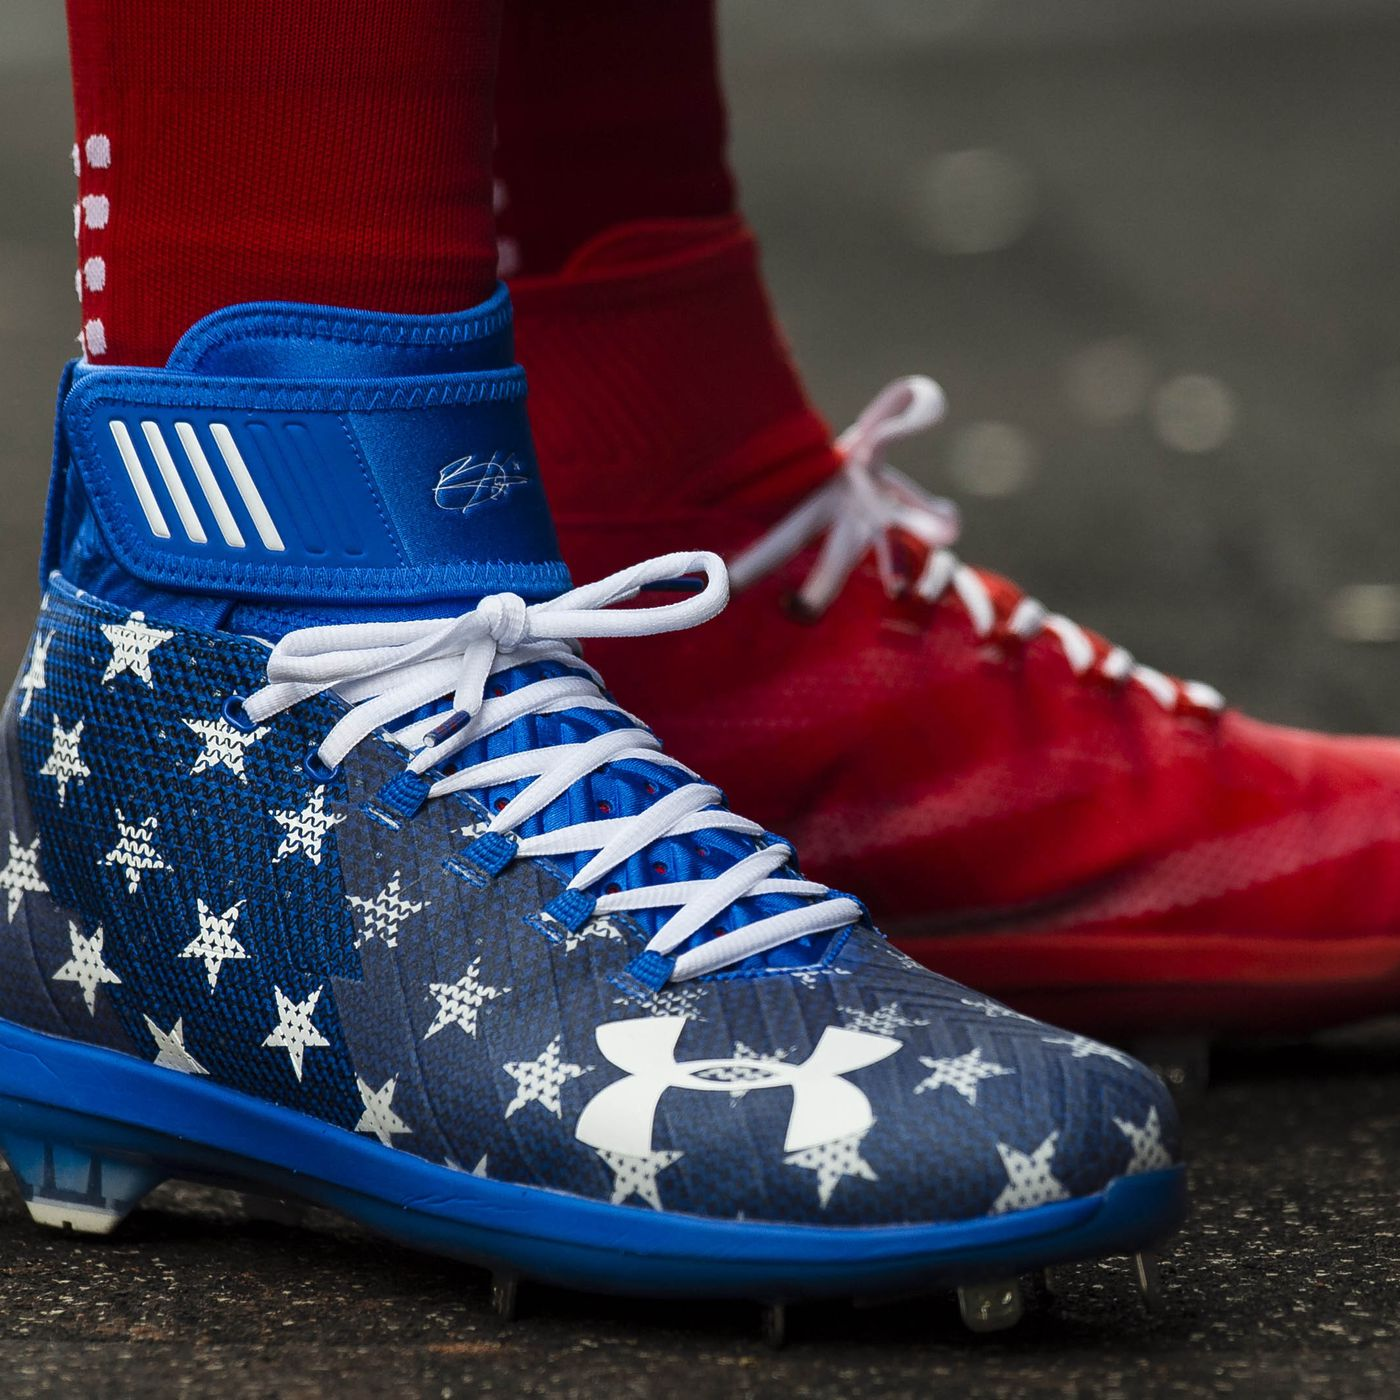 de3ca5aaeee0 Bryce Harper s 4th of July cleat game is on point - Federal Baseball